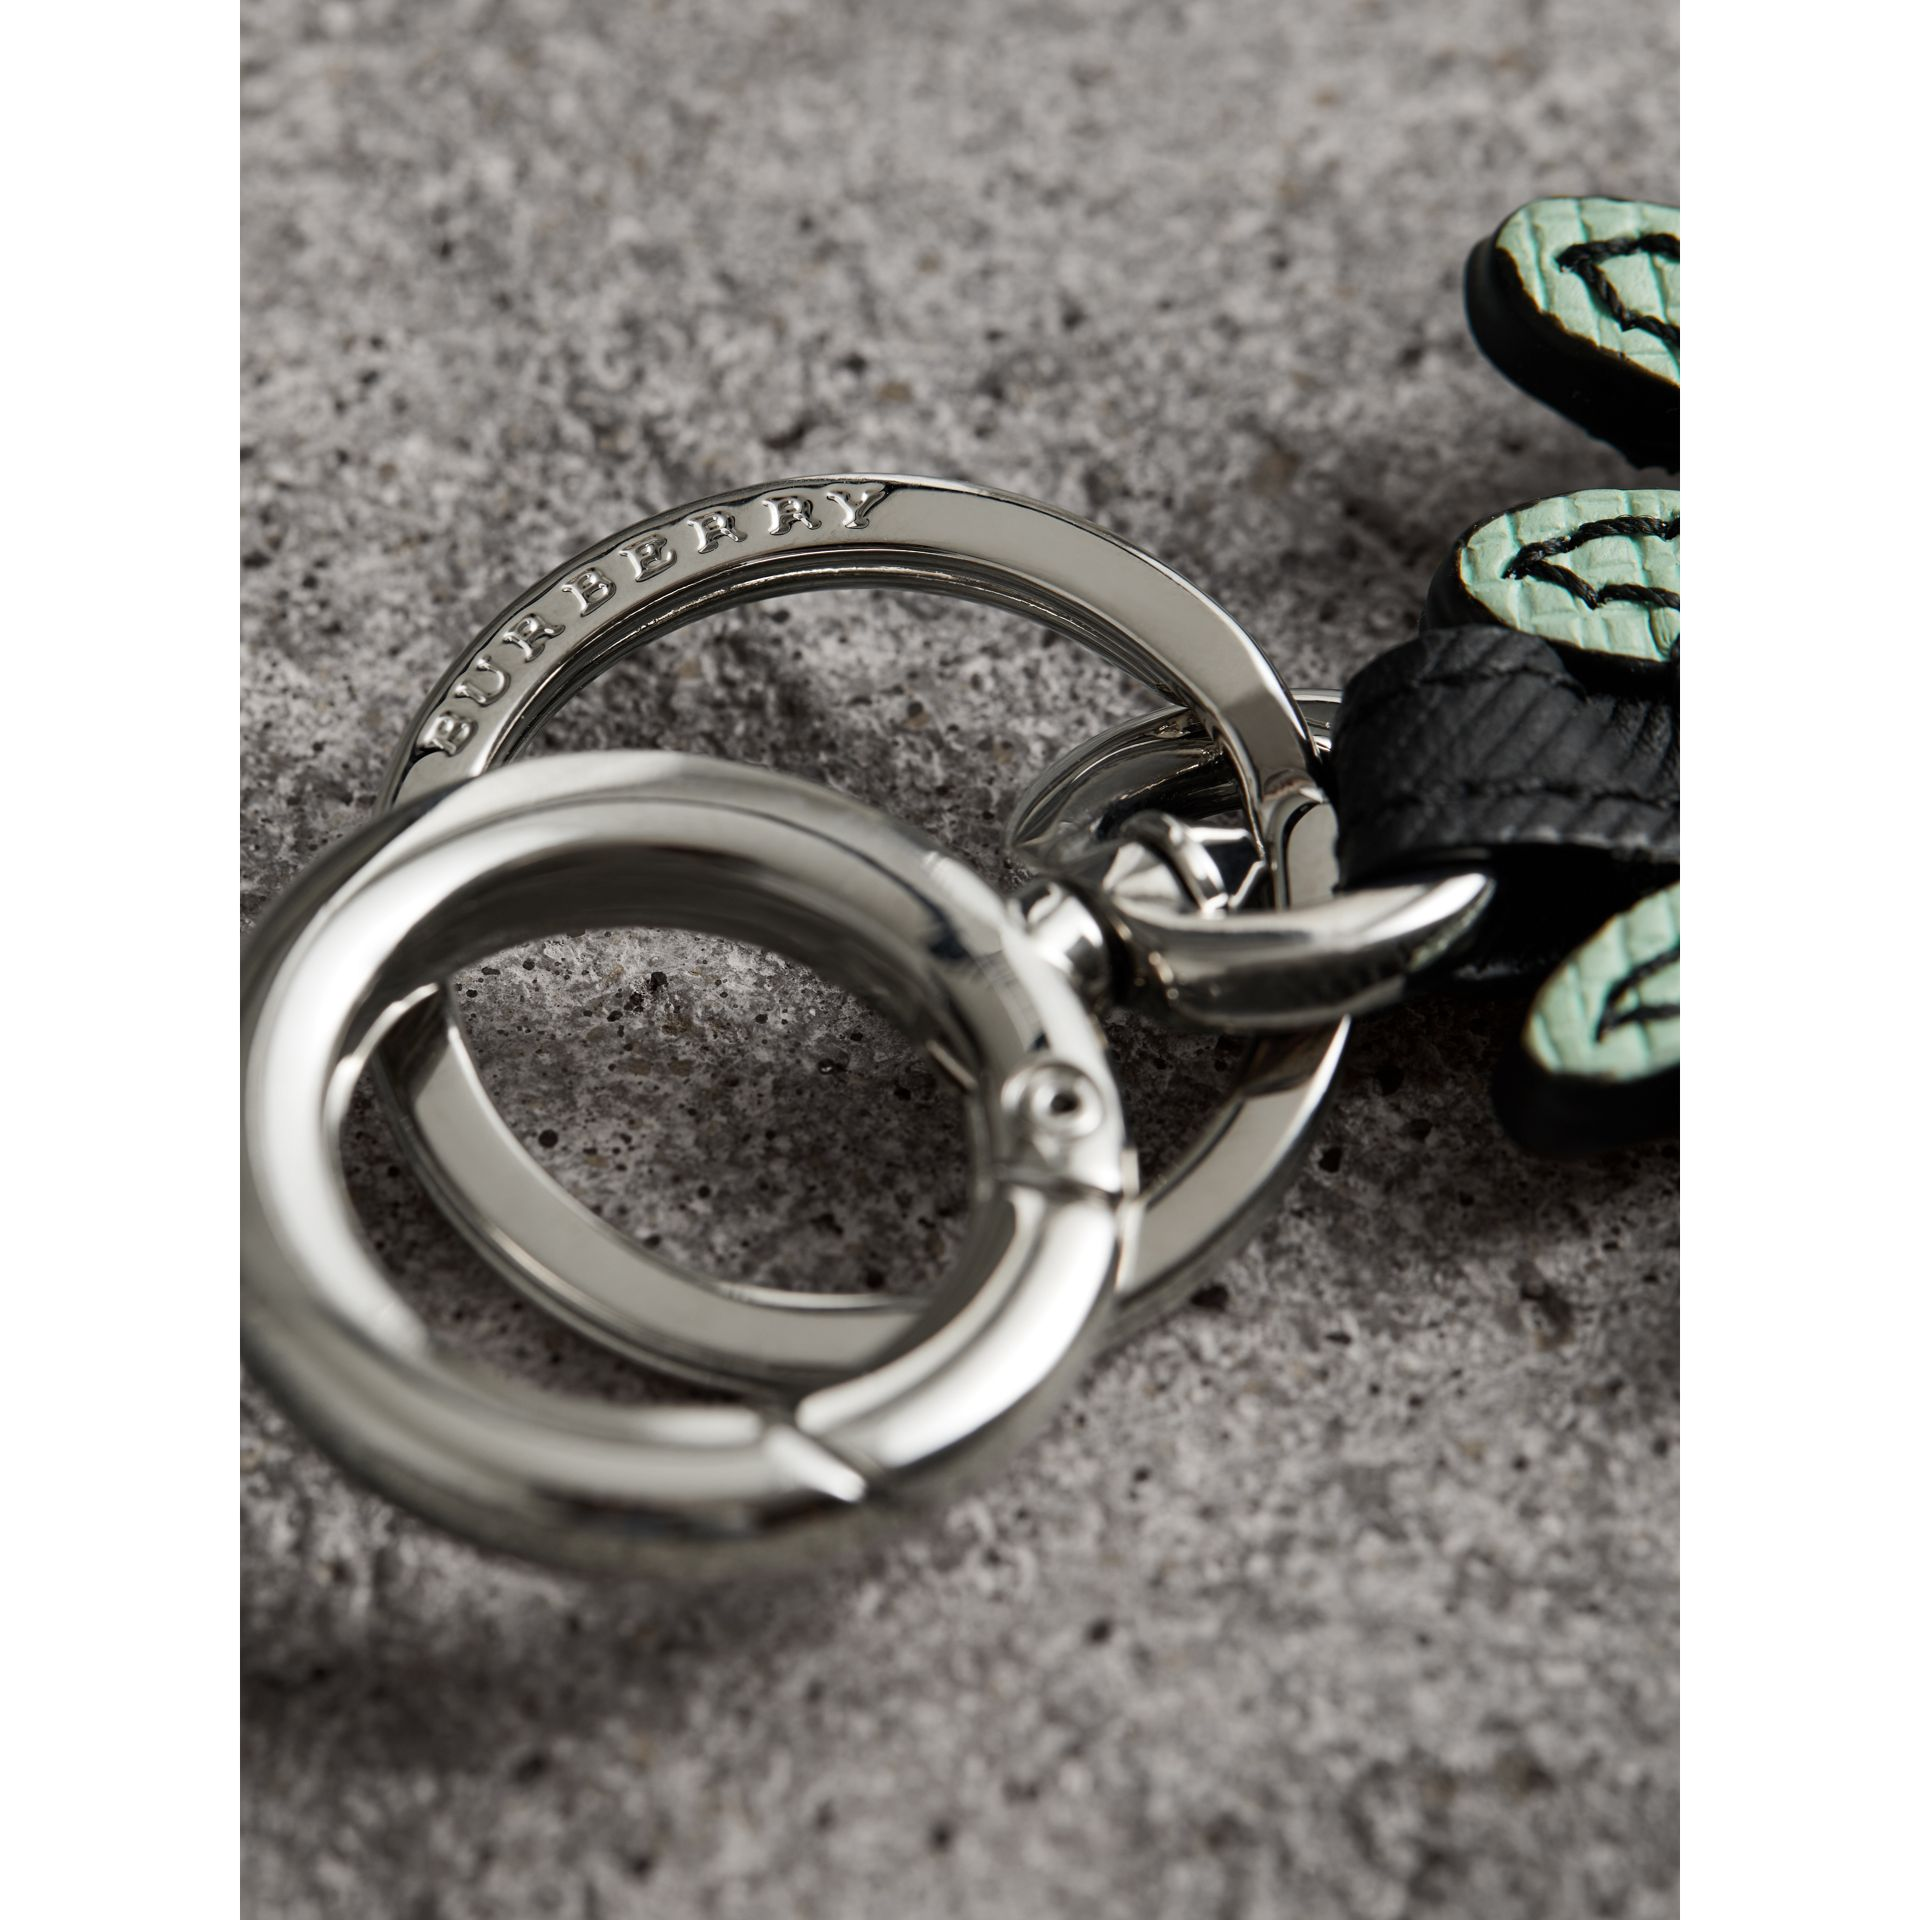 Creature Motif Leather Trim Key Ring in Light Mint - Men | Burberry - gallery image 1